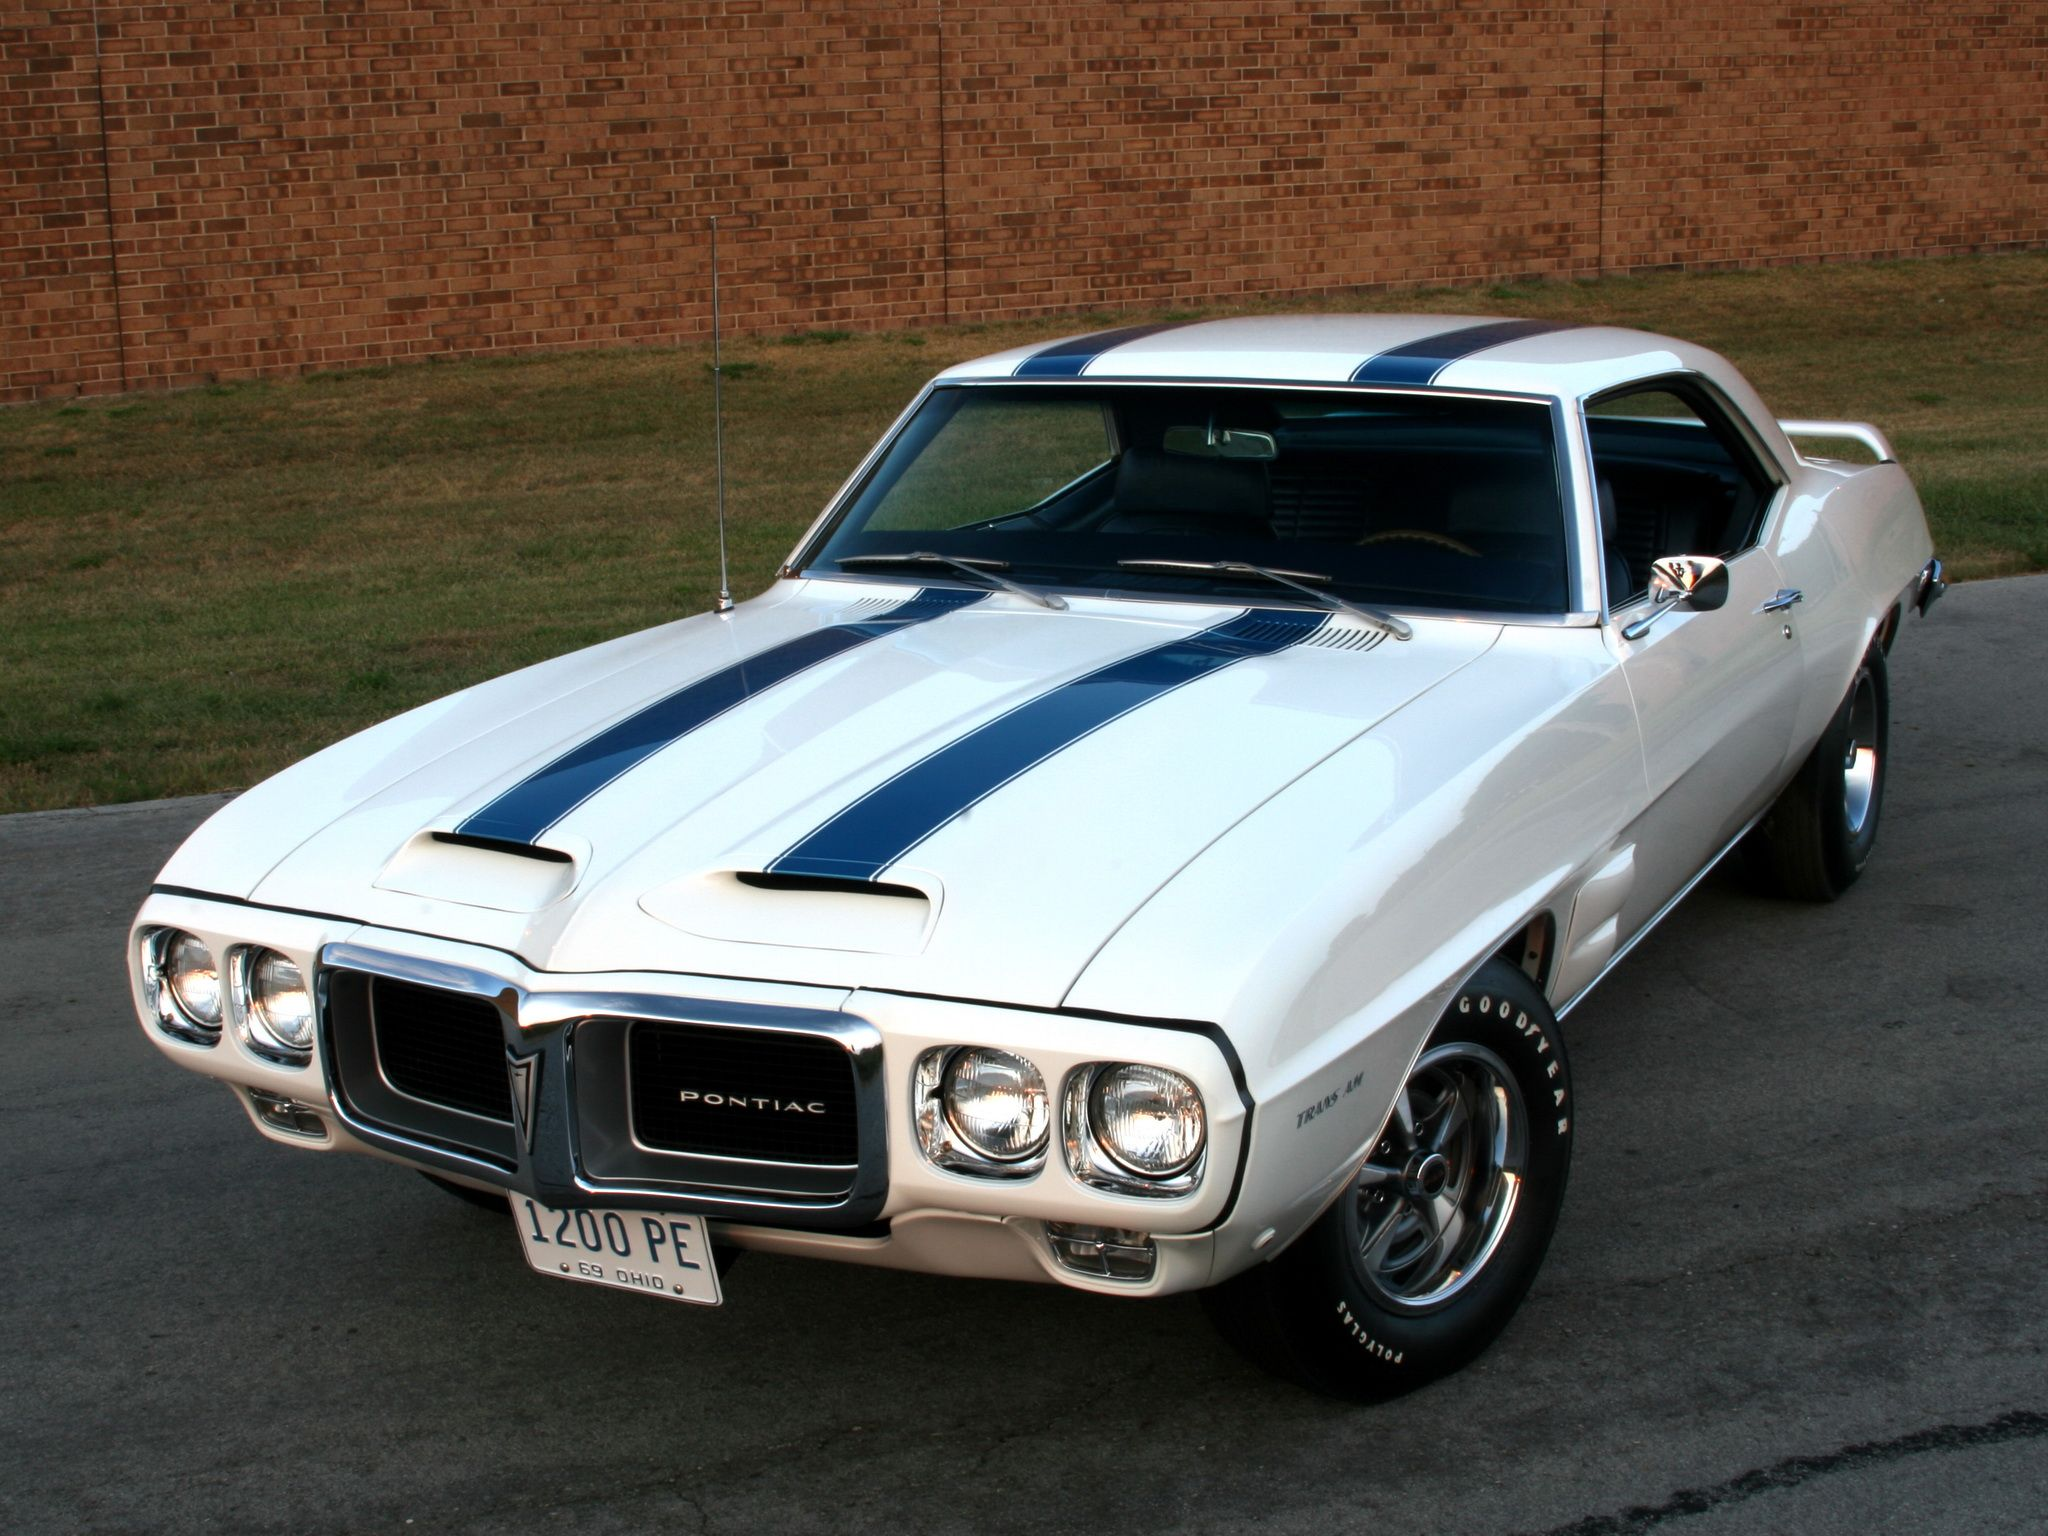 1969 pontiac firebird trans am coupe muscle classic fs wallpaper background